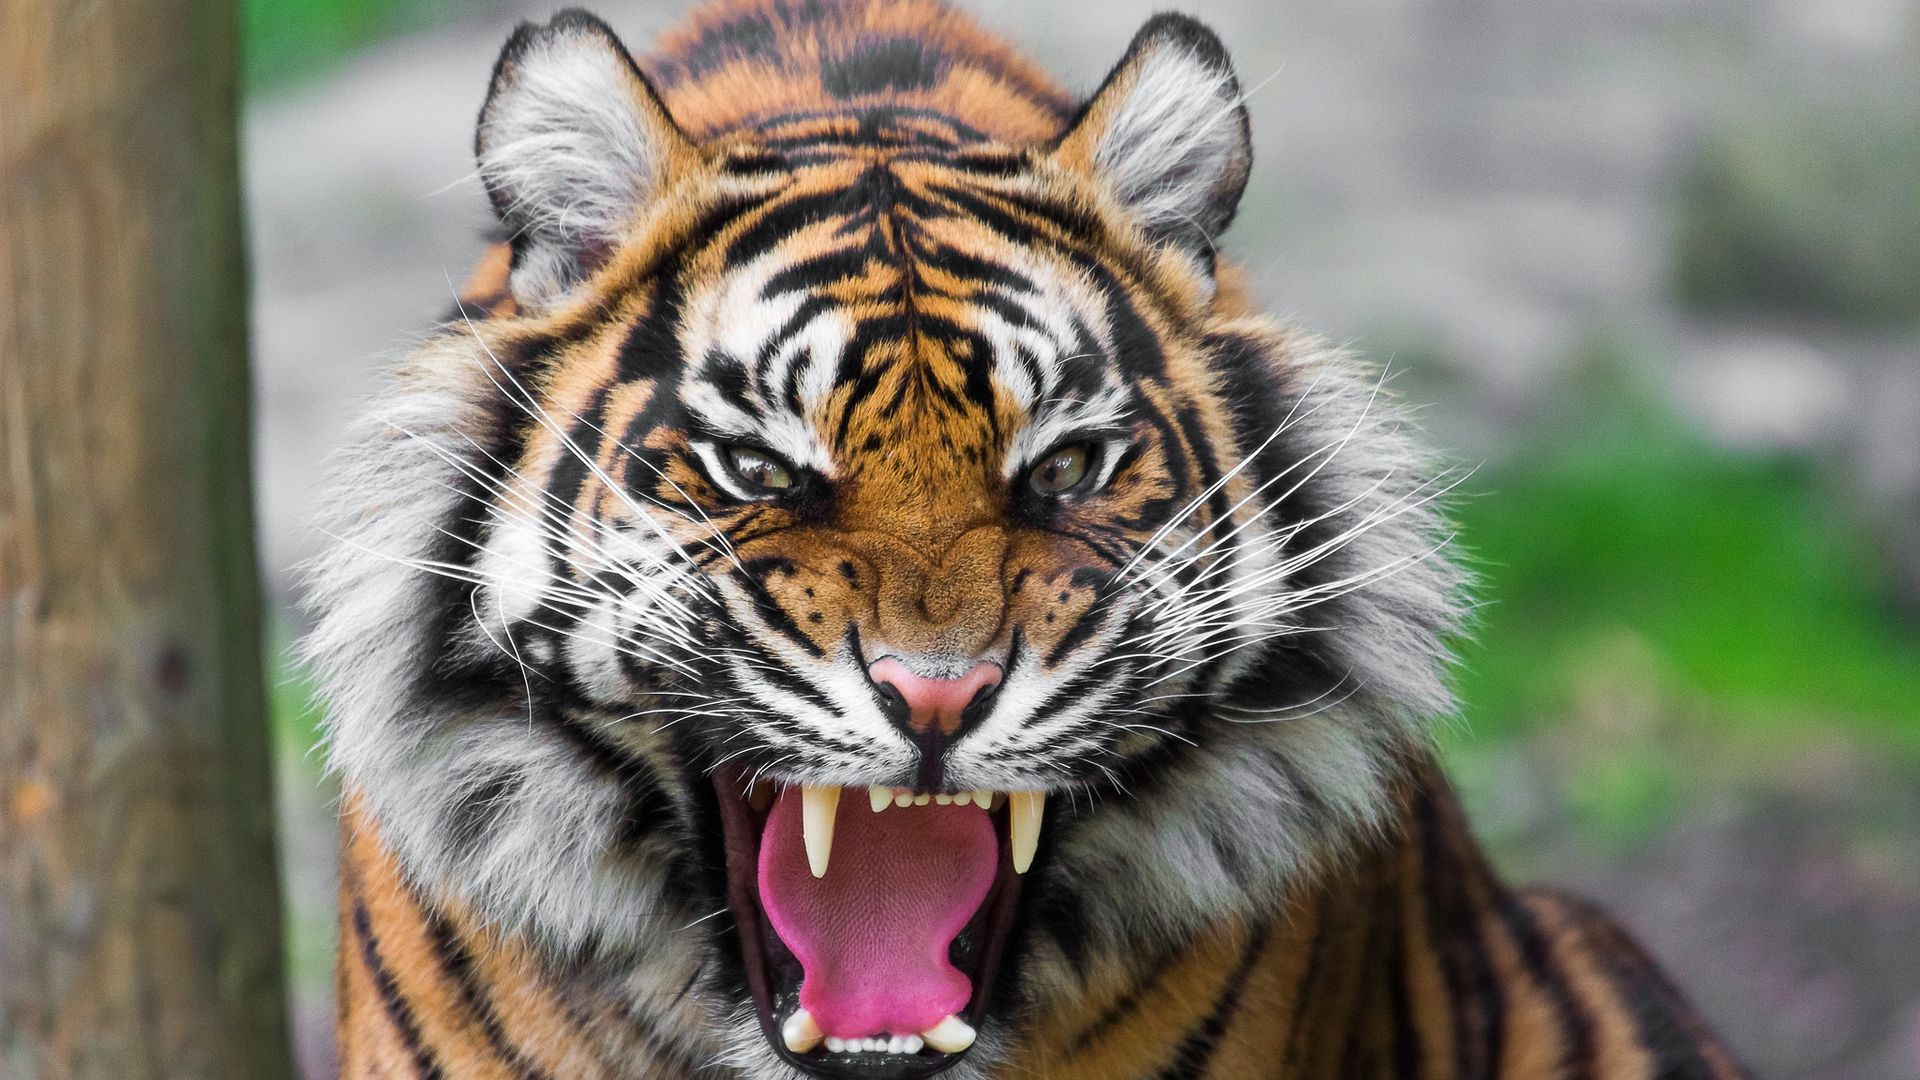 Tiger, Predator, Grin, Anger, Aggression Wallpapers Full Hd, Hdtv, Fhd,